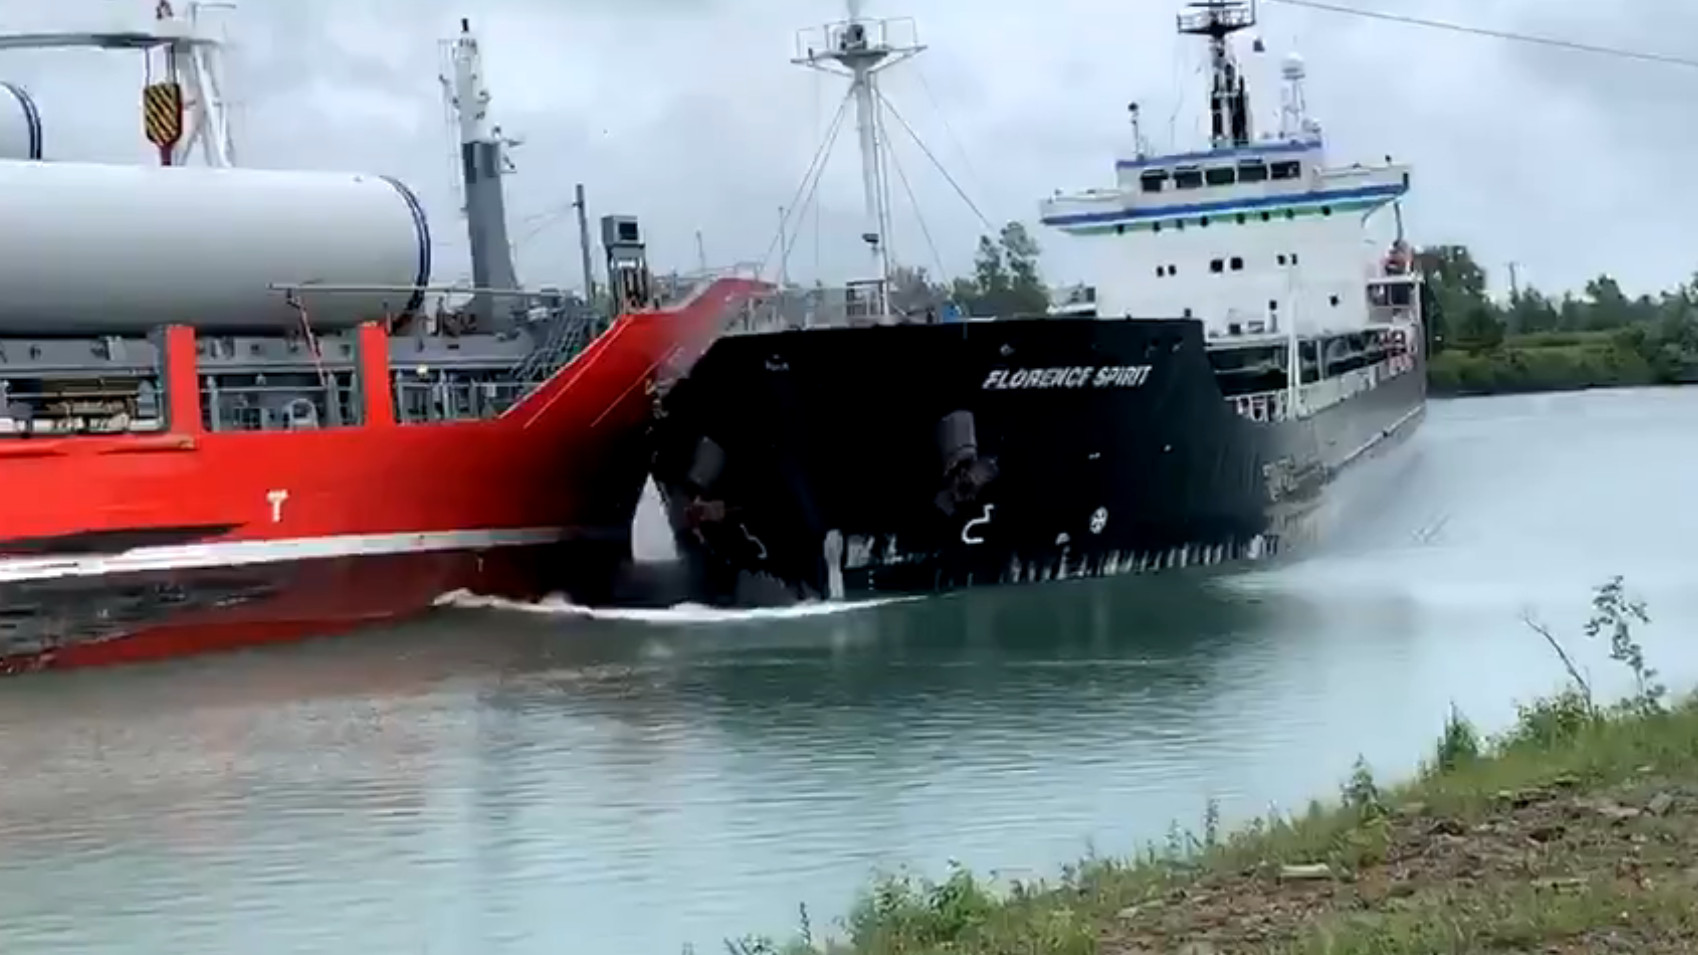 Dramatic collision between two vessels on Welland Canal ...